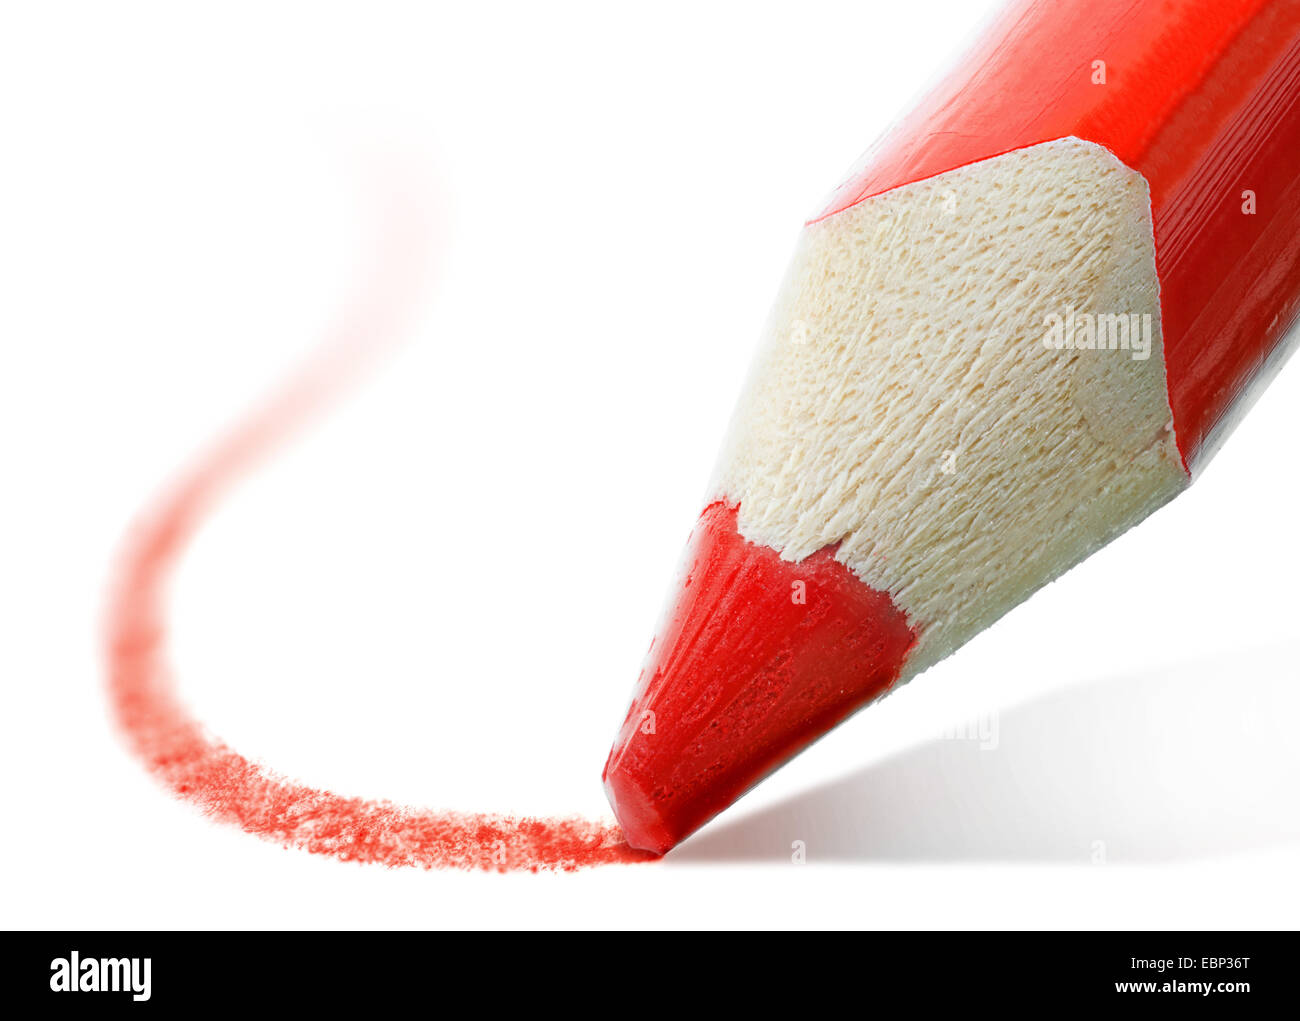 macro shot of the tip of a red pencil - Stock Image